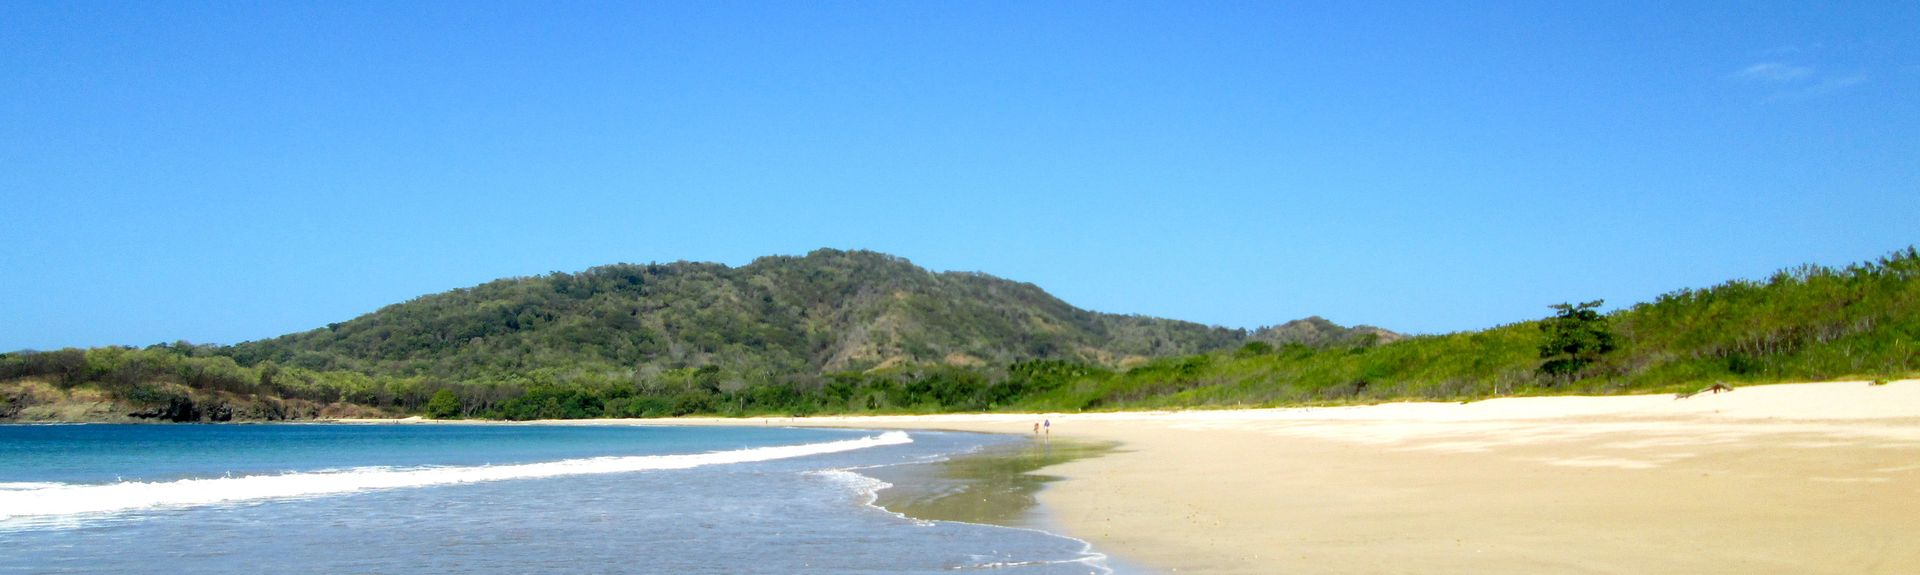 Cantón Carrillo, Guanacaste, Costa Rica